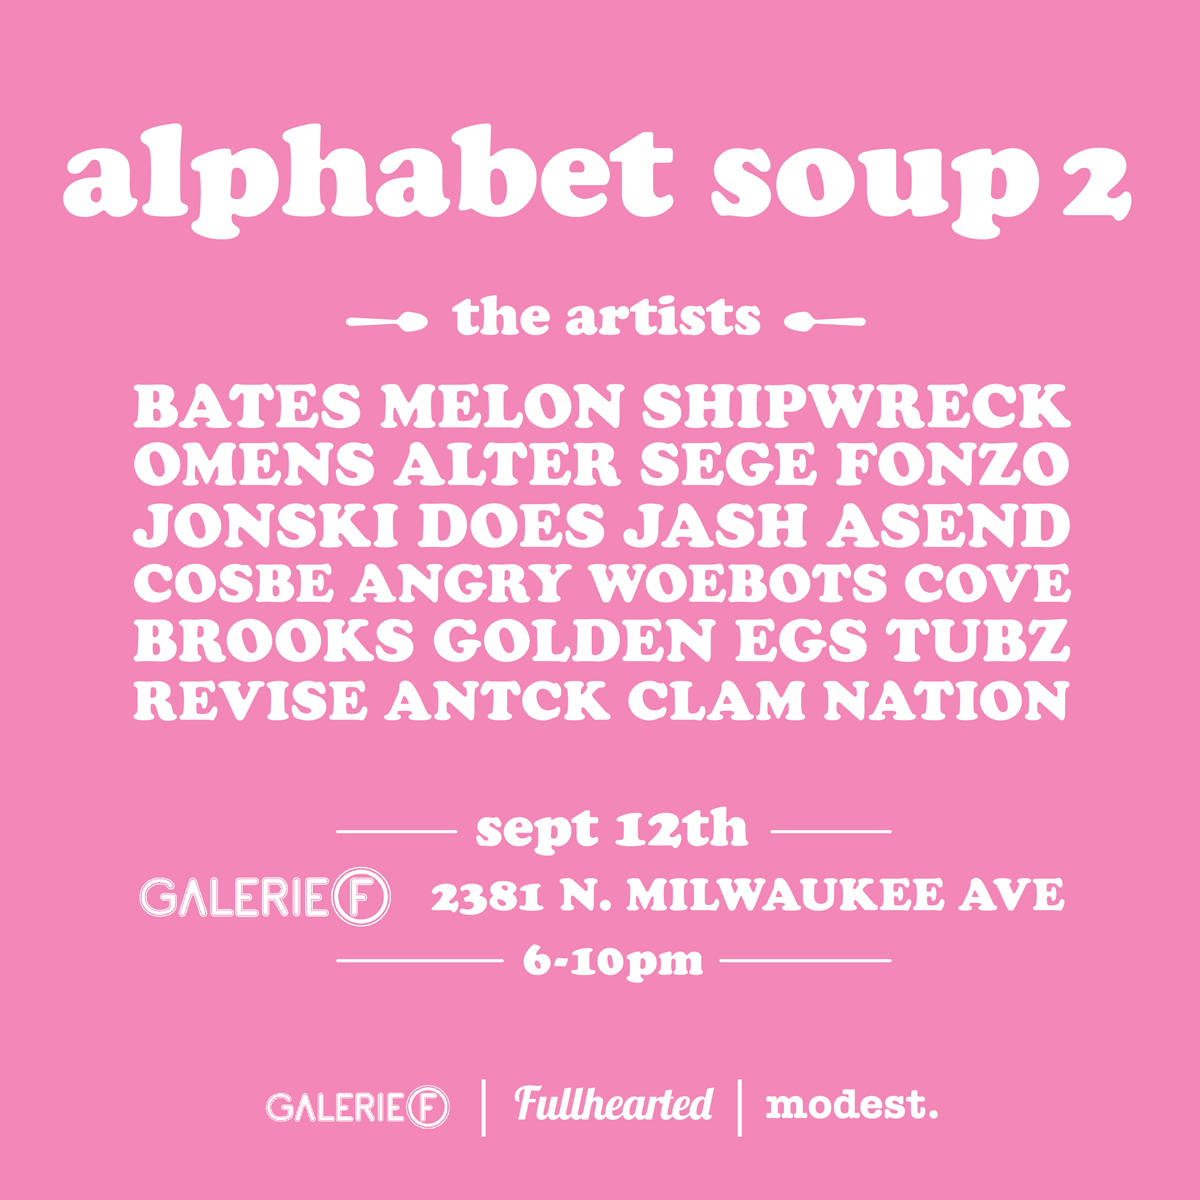 Alphabet Soup 2  Opening reception Friday September 12th     Galerie F  || 6pm to 10pm   2381 N Milwaukee Avenue, Chicago IL    Letterform and design as seen through the eyes of the street artist... part 2. Soup's on.  BATES - MELON - SHIPWRECK - OMENS ALTER - SEGE - FONZO - JONSKI DOES - JASH - ASEND - COSBE ANGRY WOEBOTS - COVE - BROOKS GOLDEN EGS - TUBZ - REVISE - ANTCK - CLAM NATION